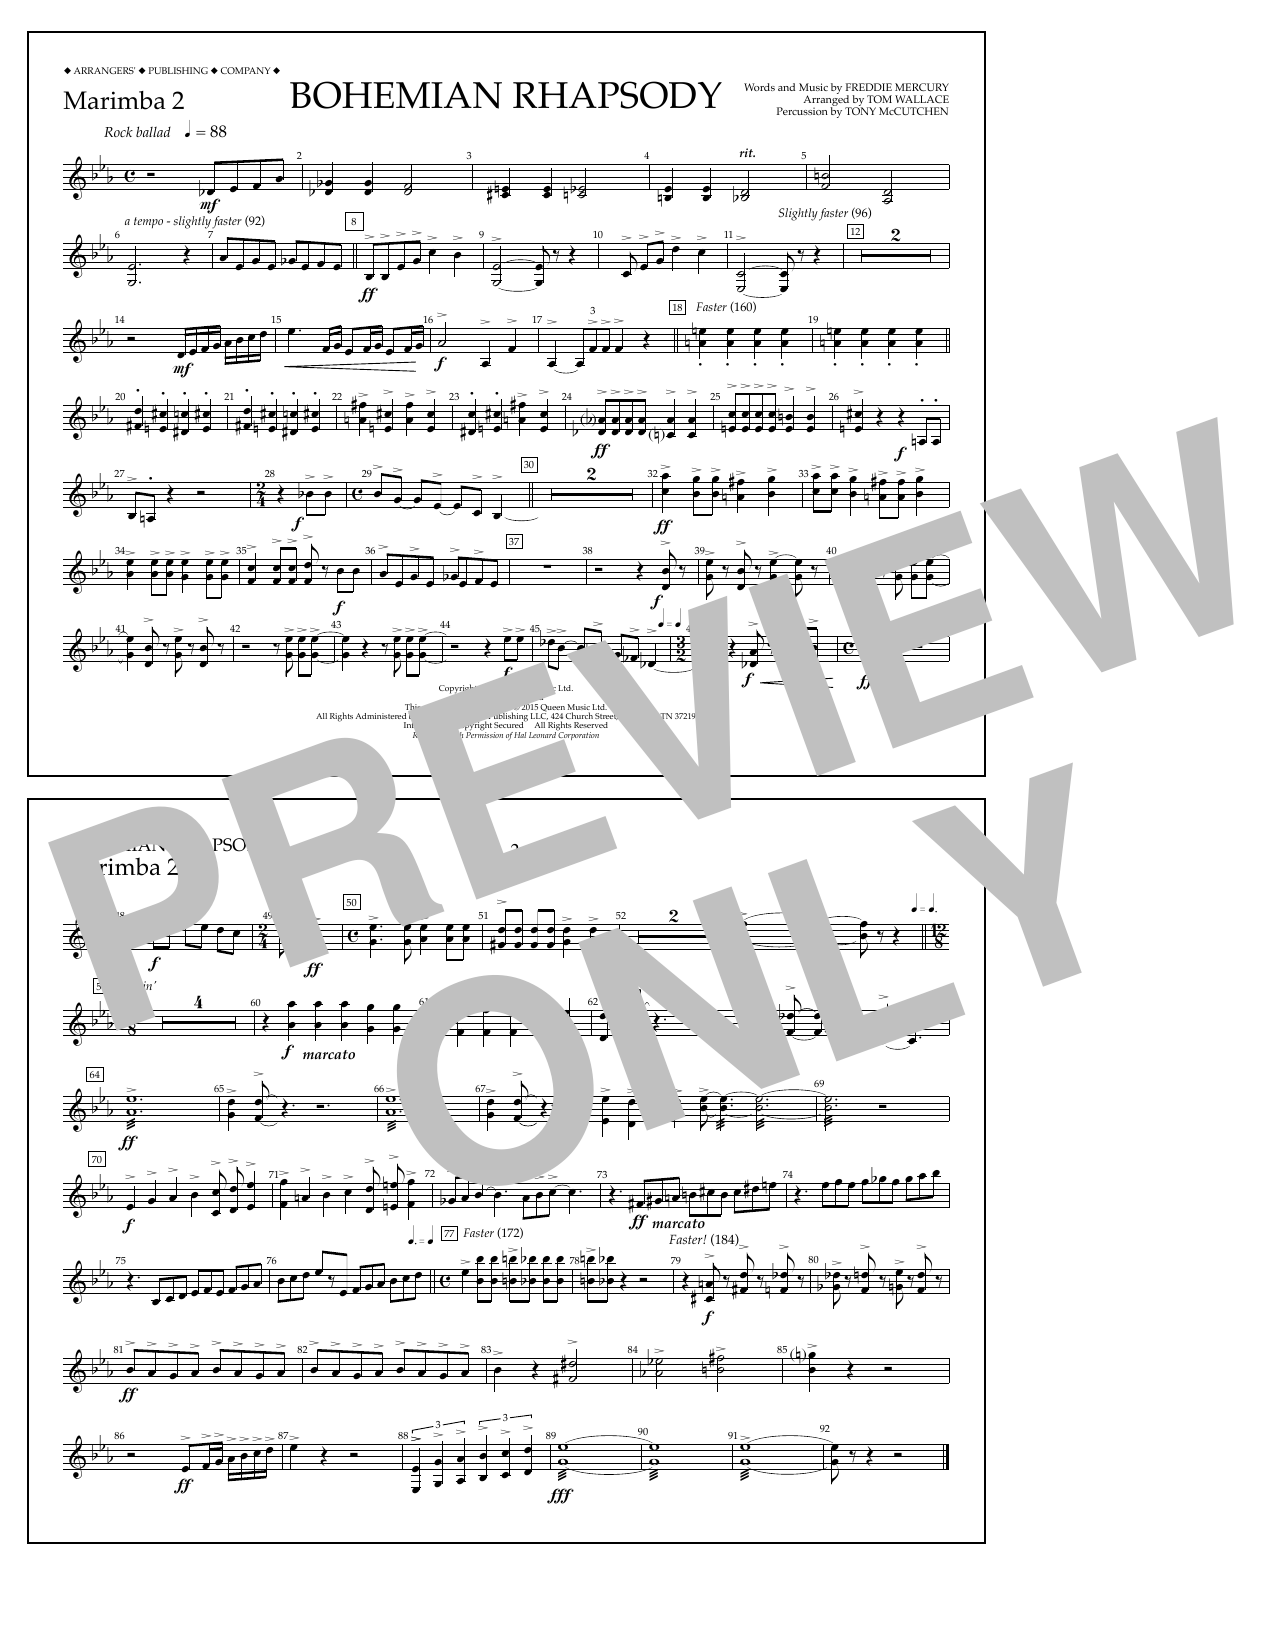 Tom Wallace Bohemian Rhapsody - Marimba 2 sheet music notes and chords. Download Printable PDF.